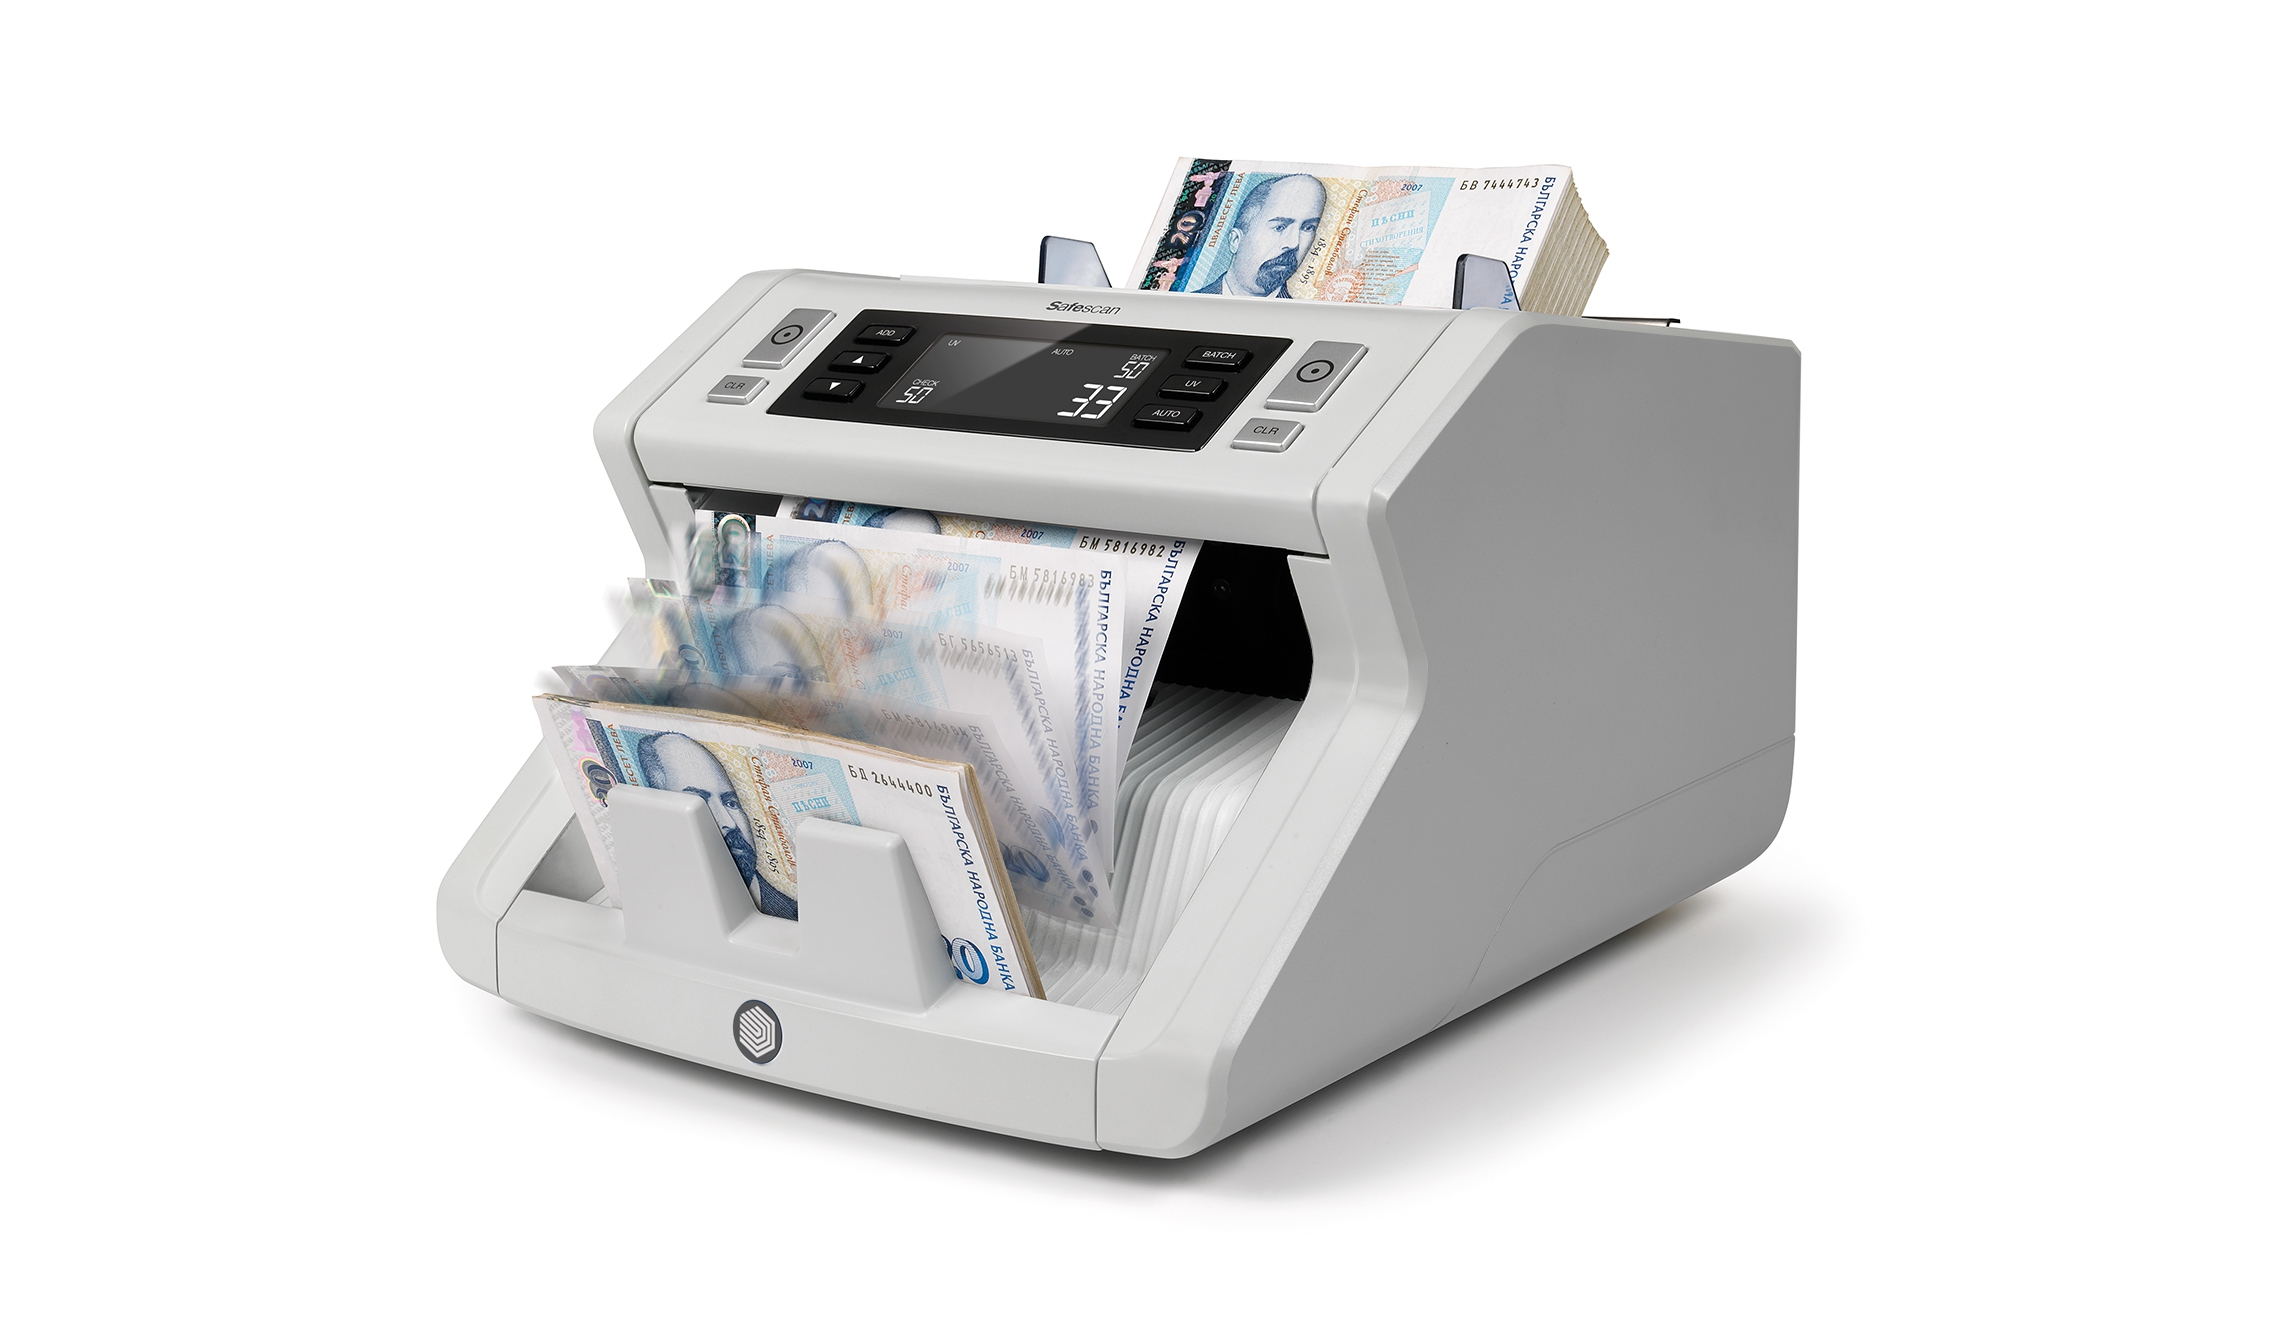 safescan-2210-counting